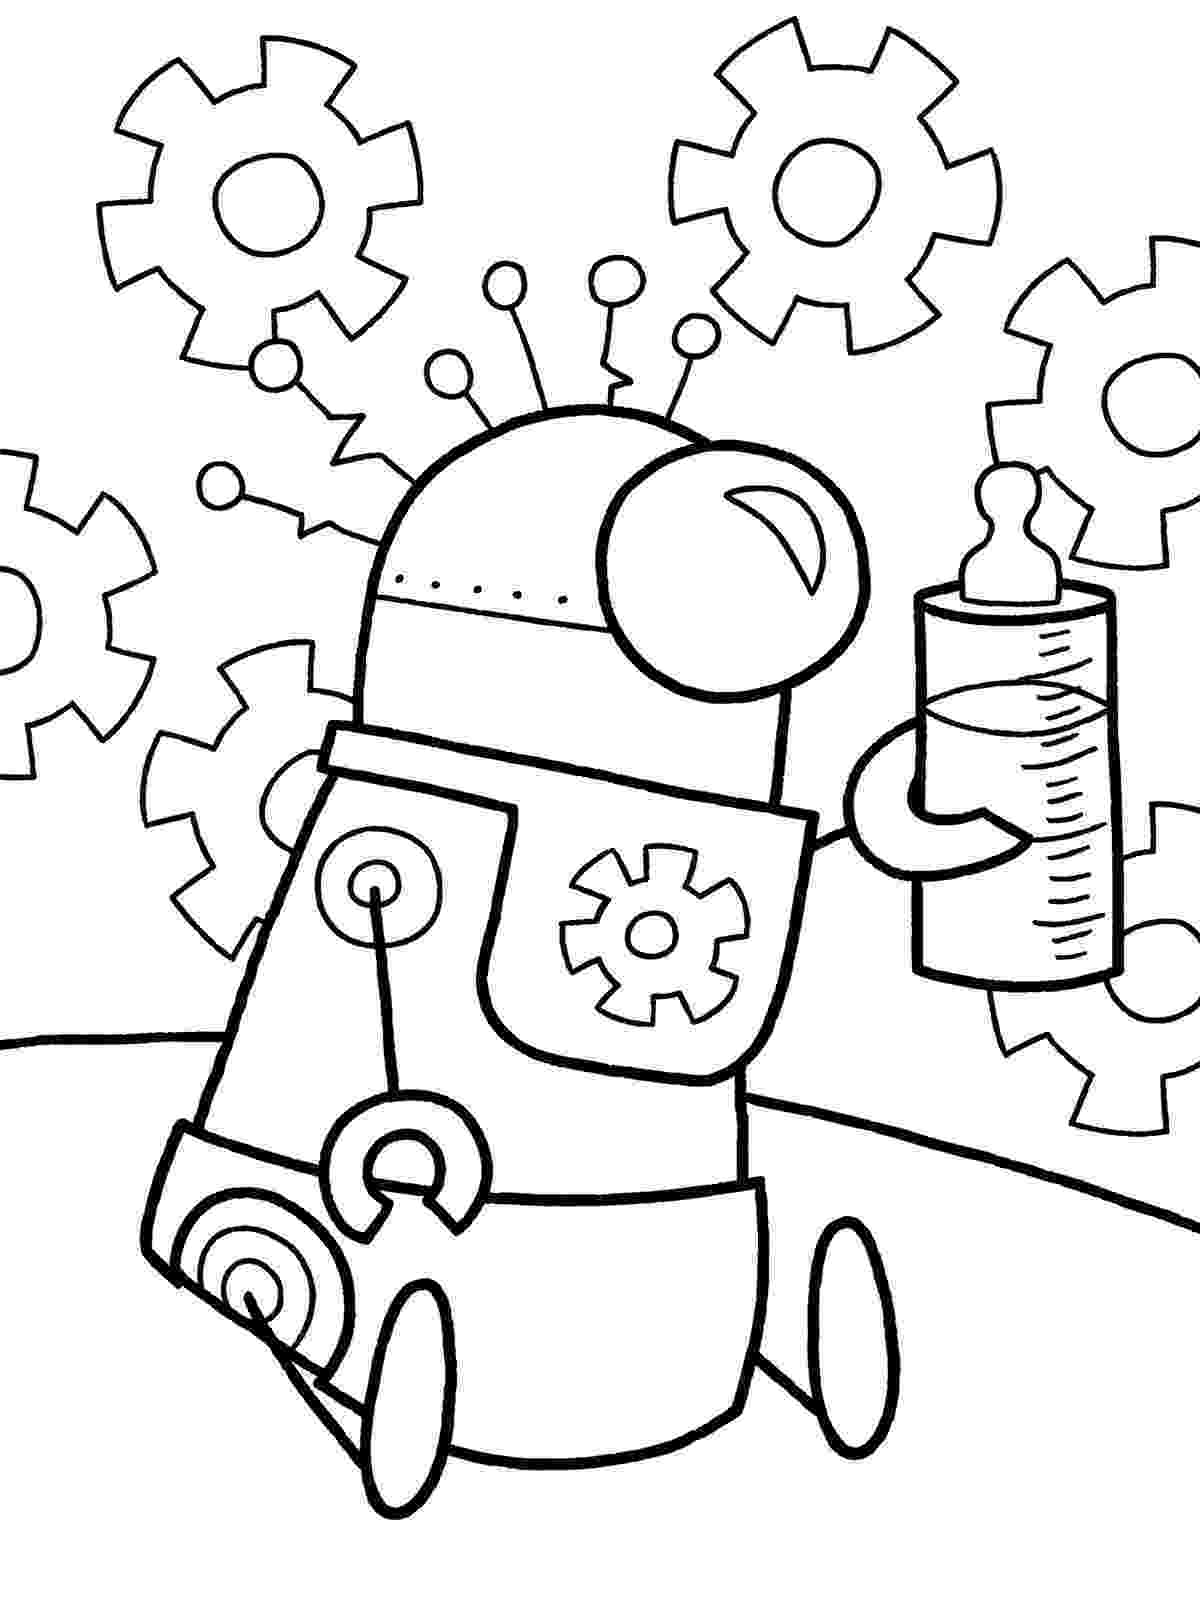 coloring page robot from future robots coloring pages and robot craft ideas page coloring robot